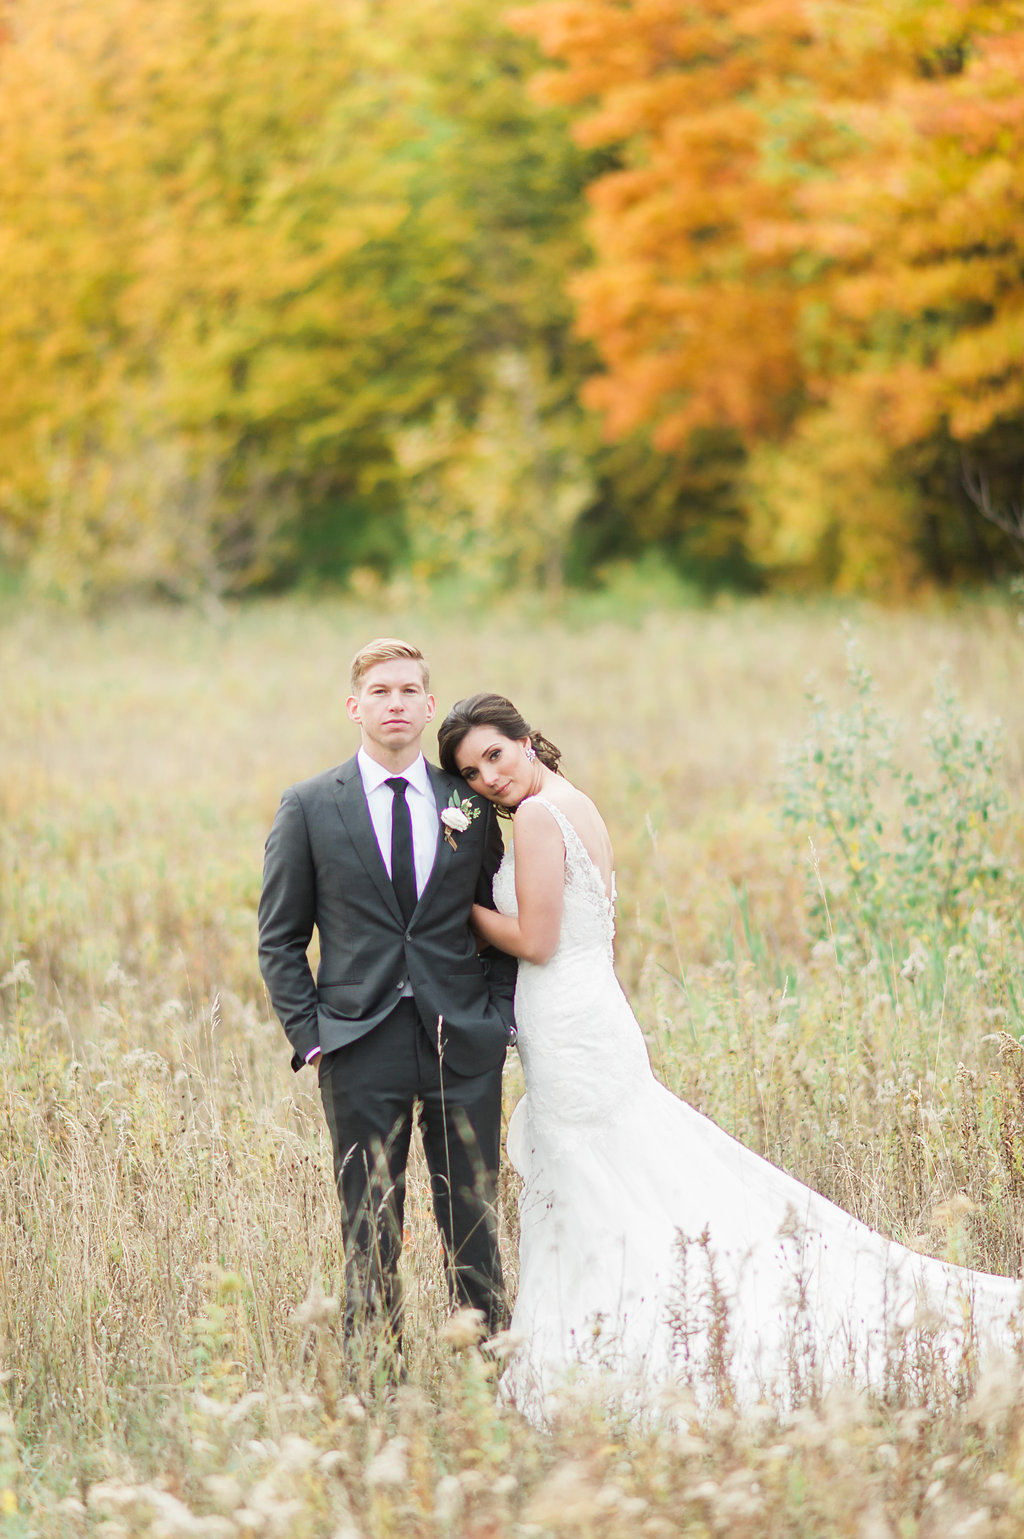 Christina & Tim | Northport, MI